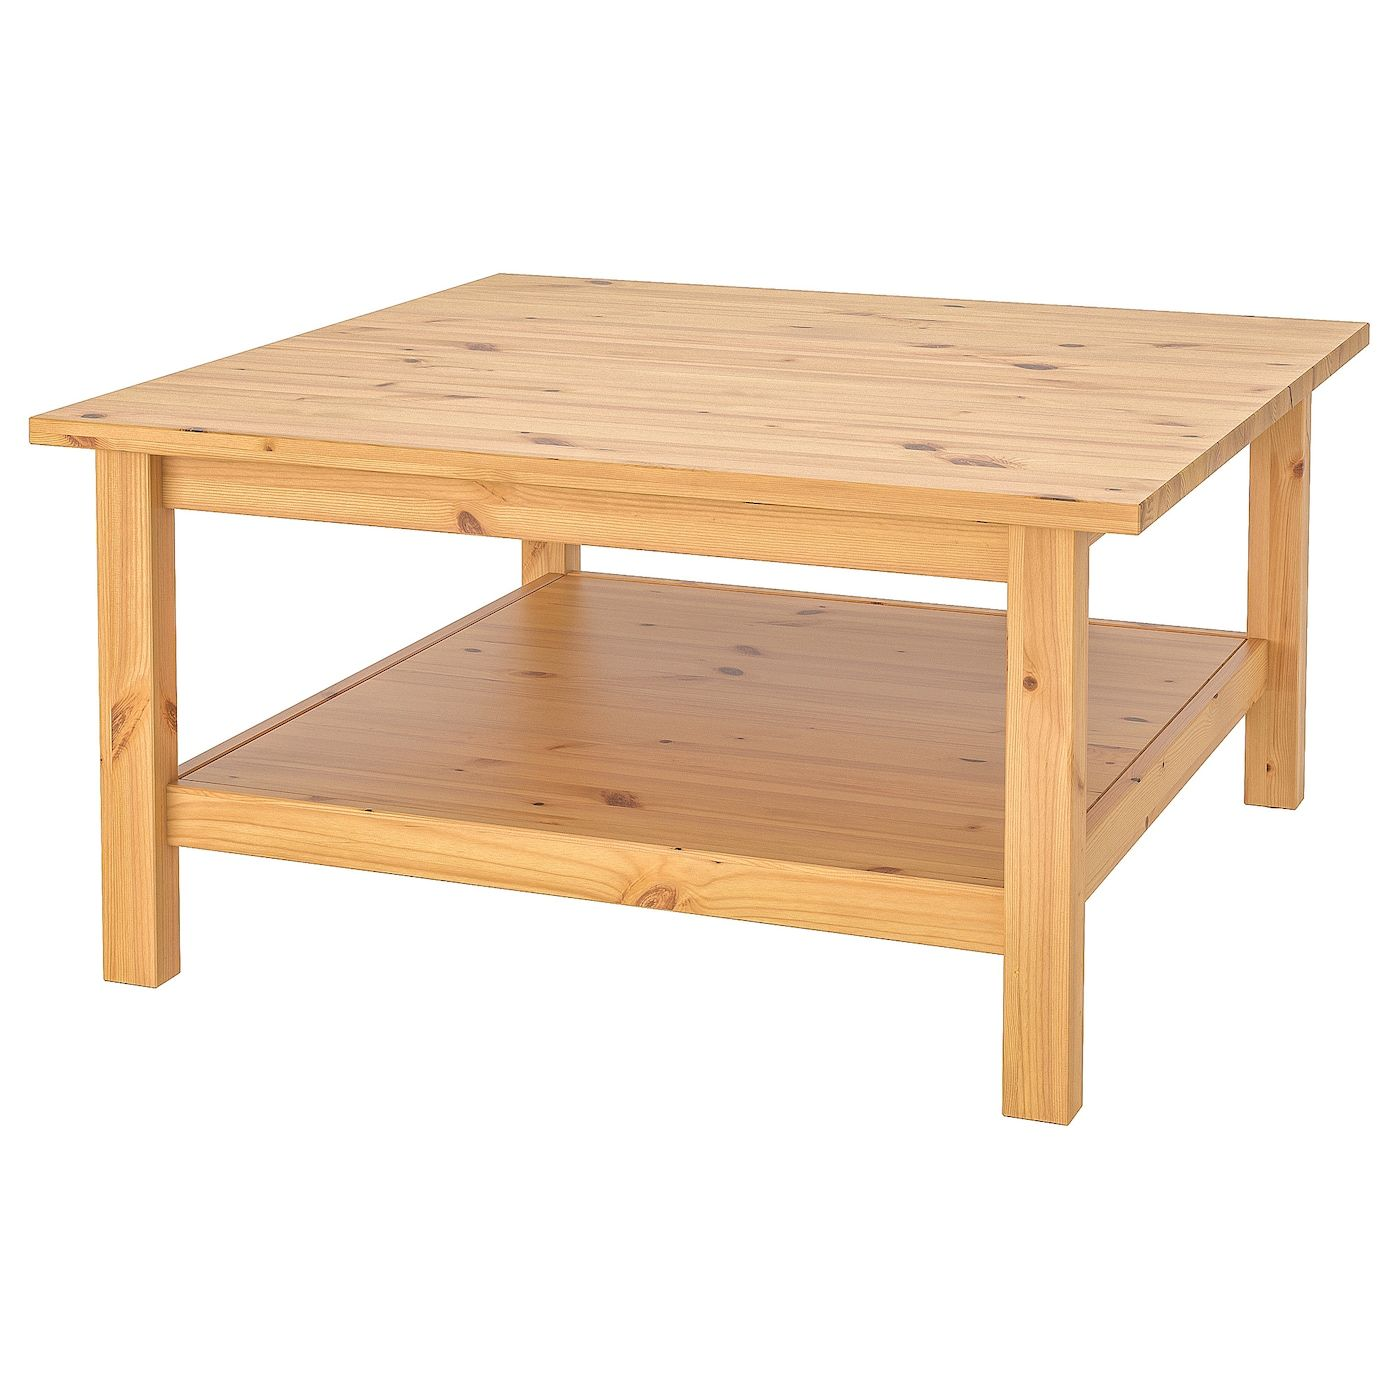 Hemnes Table Basse Brun Clair 90x90 Cm In 2020 Koffietafel